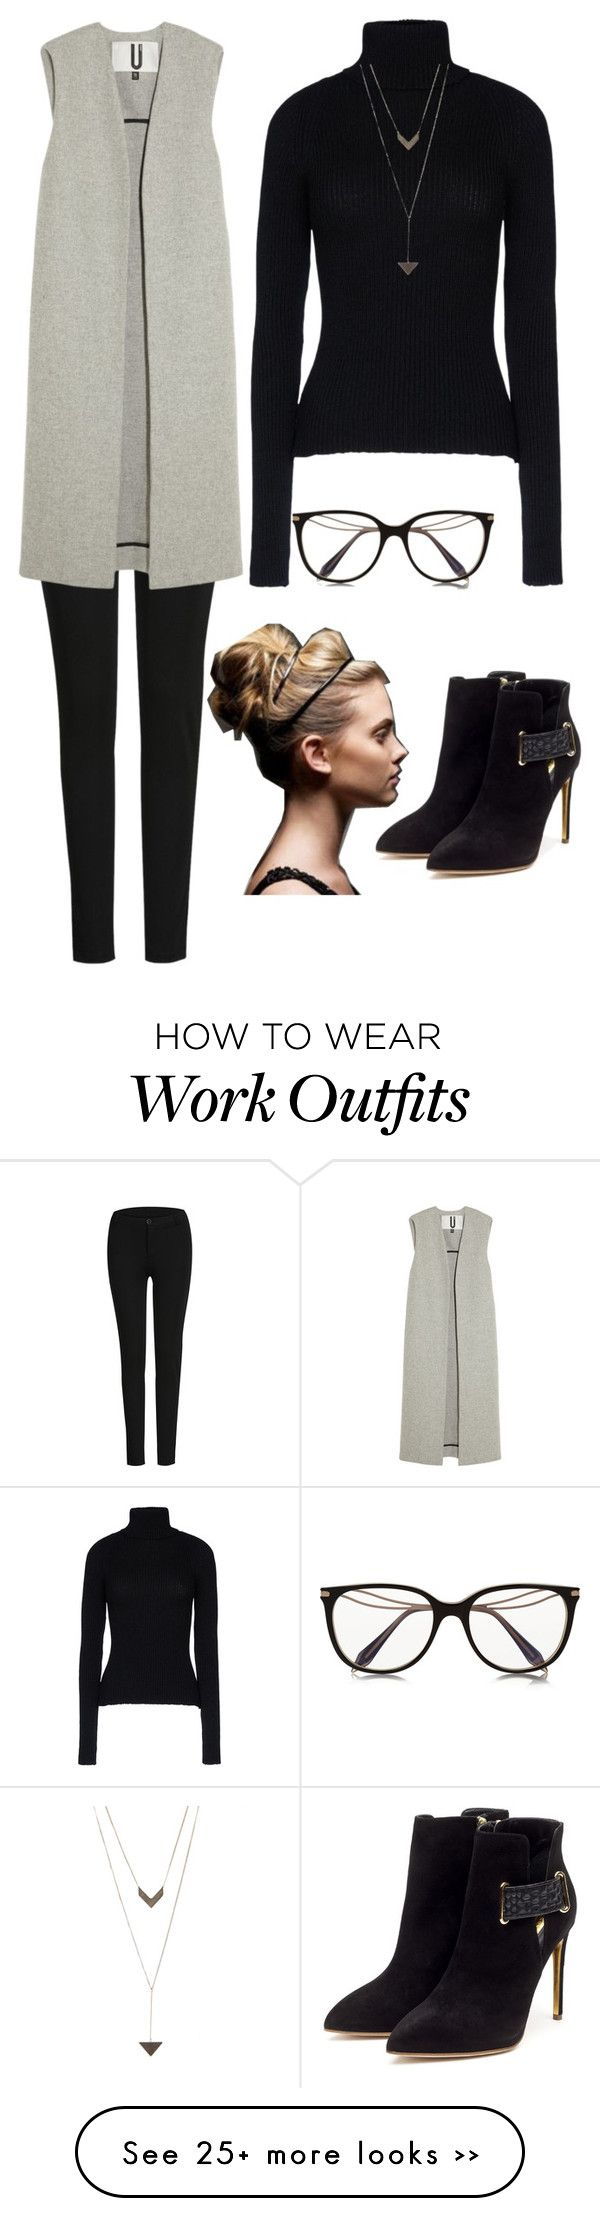 """chic officewear"" by headiedev on Polyvore"